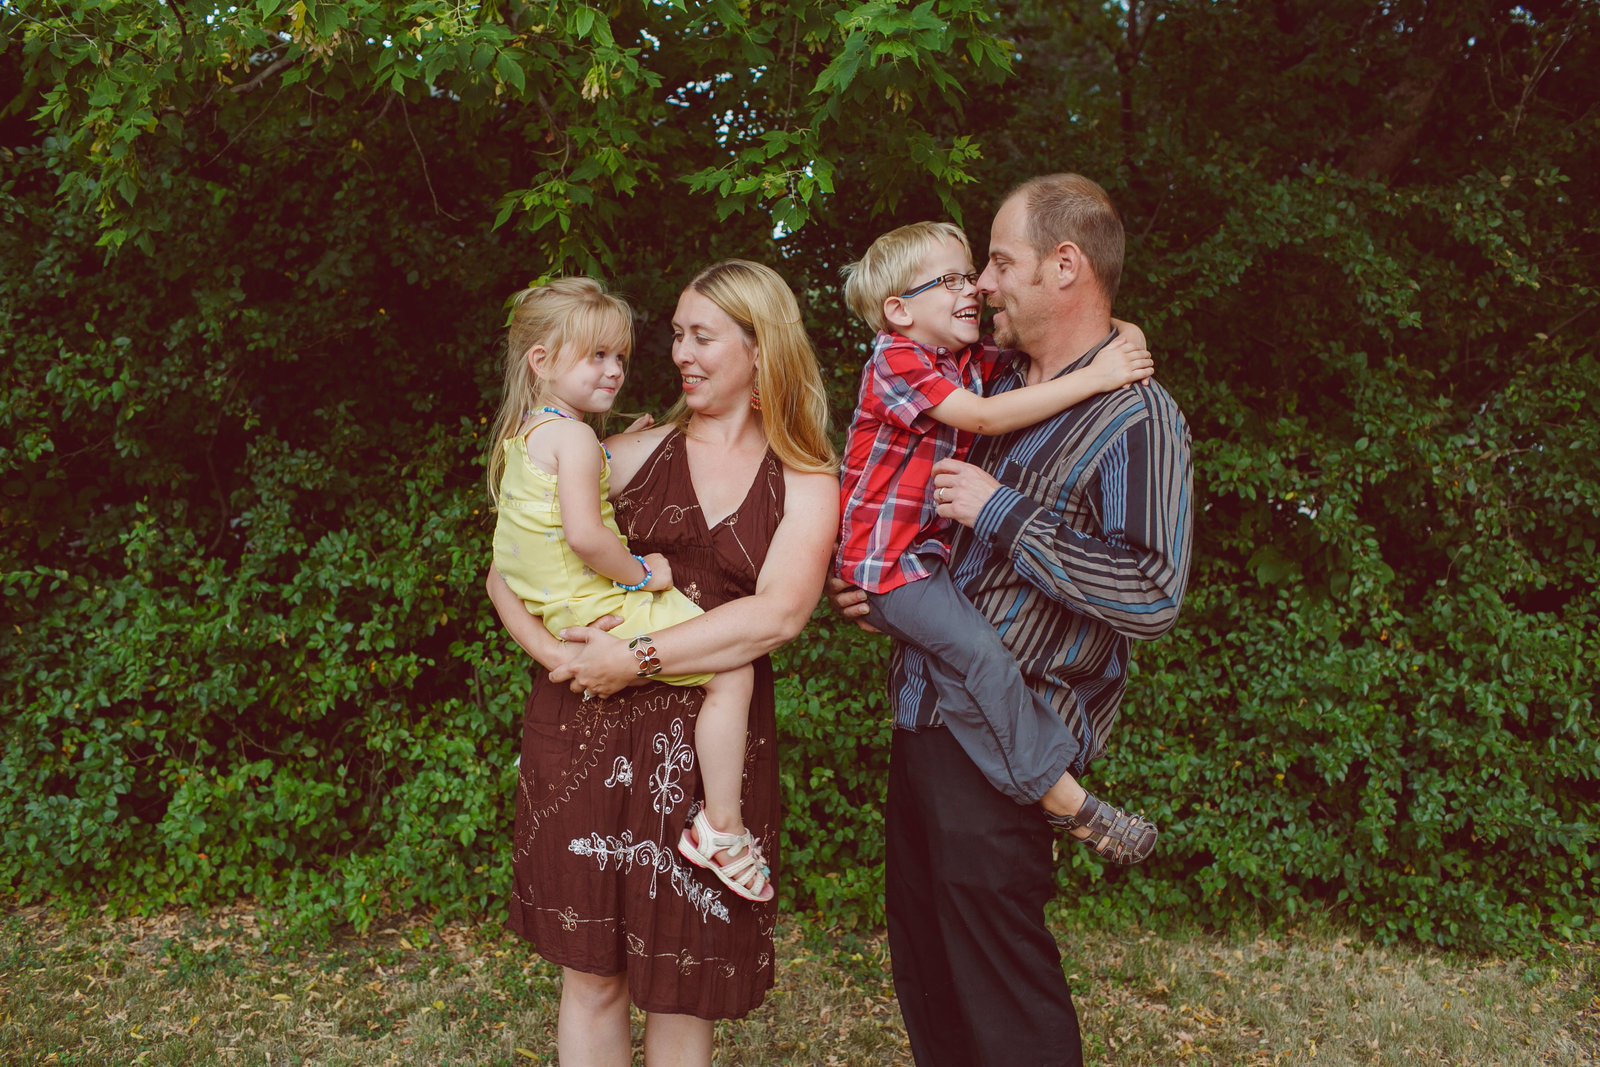 saskatchewan_western_canada_family_portrait_lifestyle_photographer_045